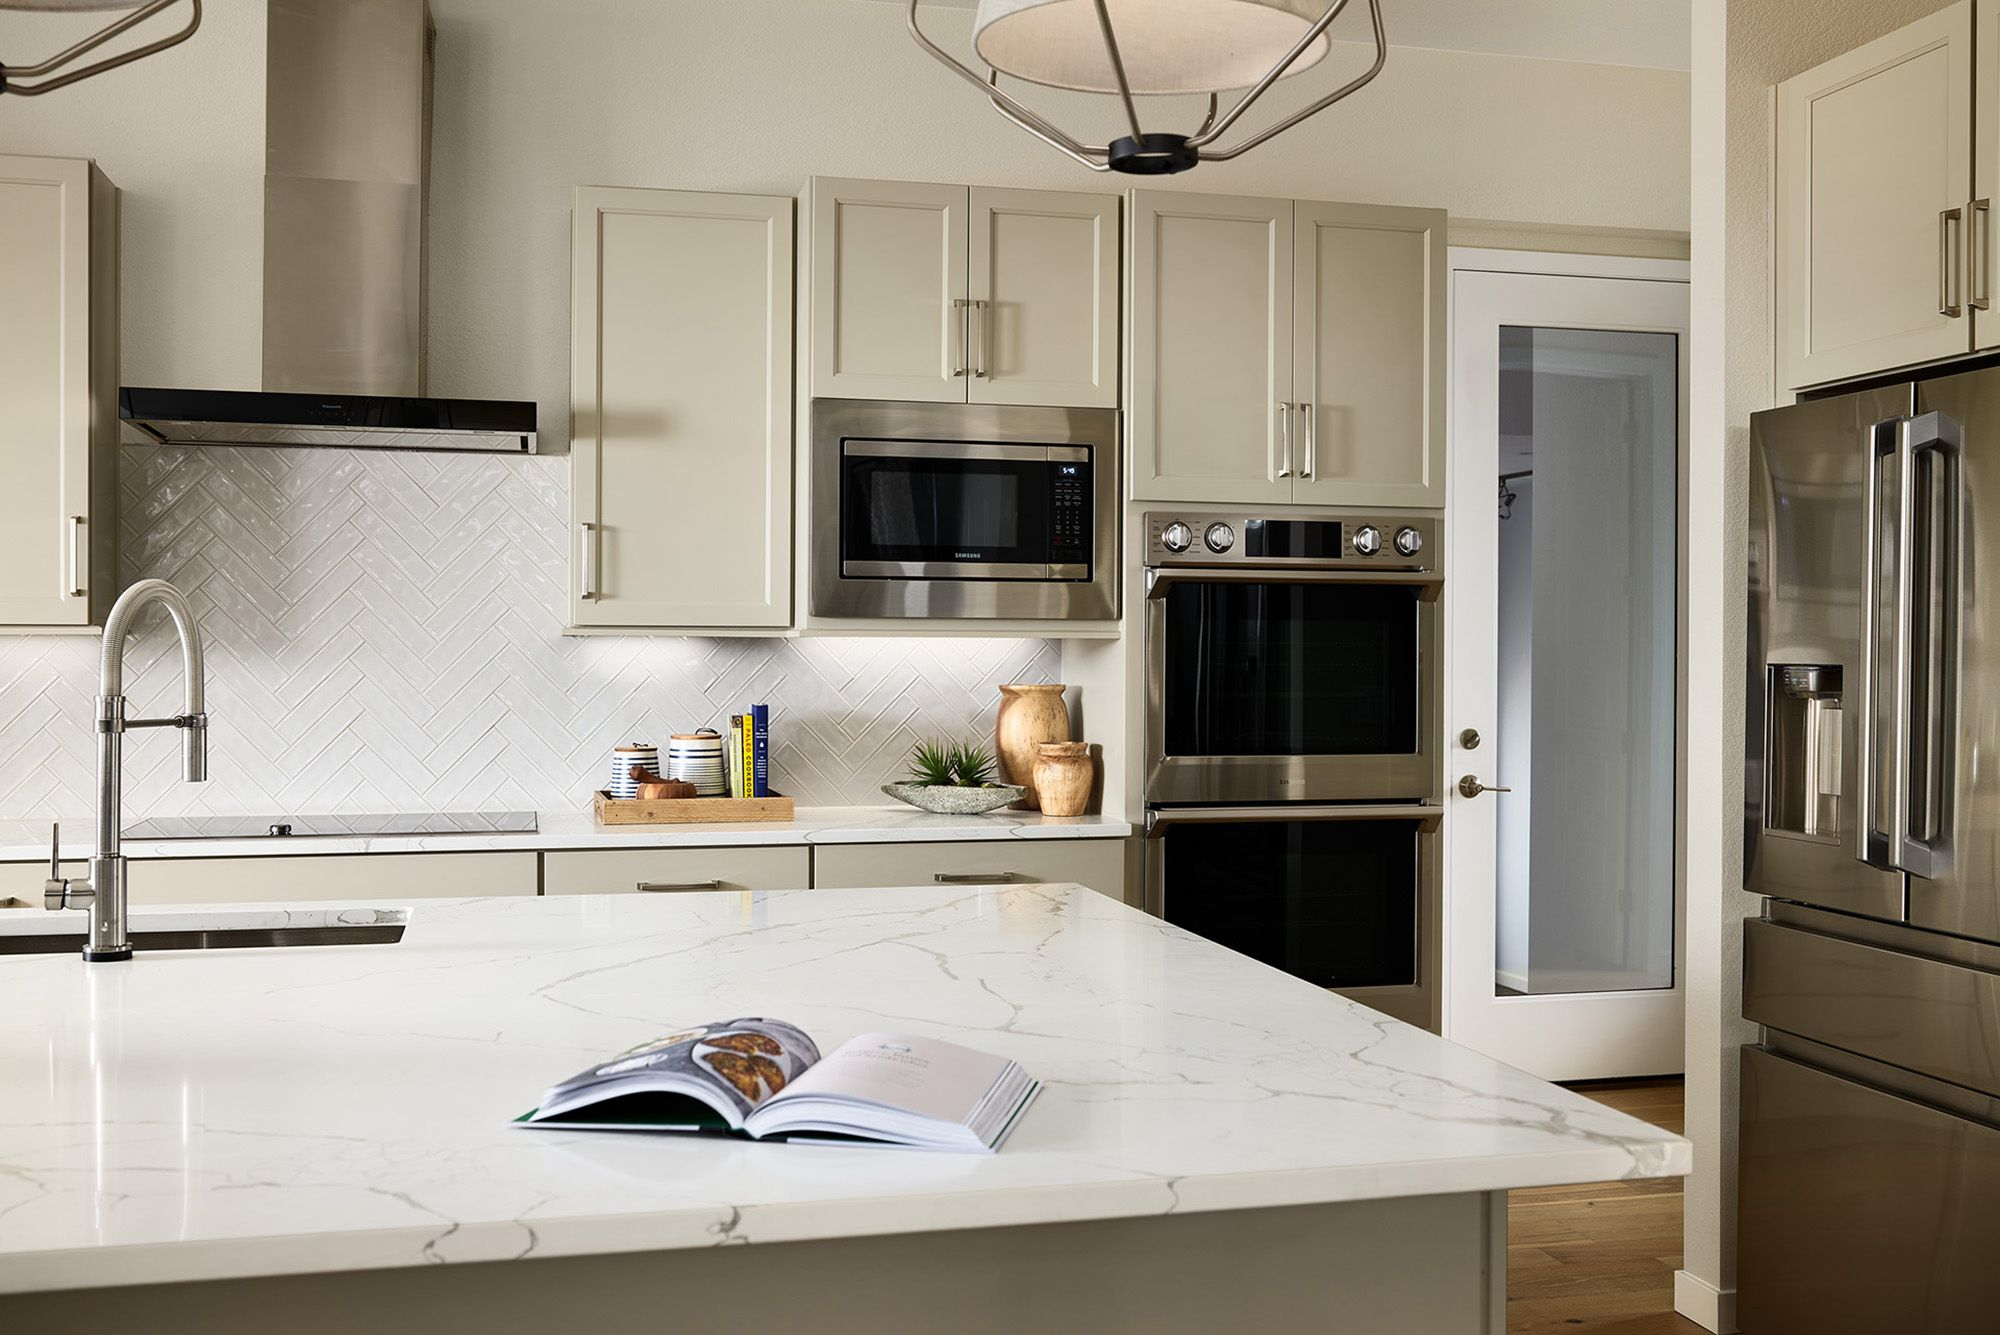 Kitchen featured in the Revive By Thrive Home Builders in Denver, CO